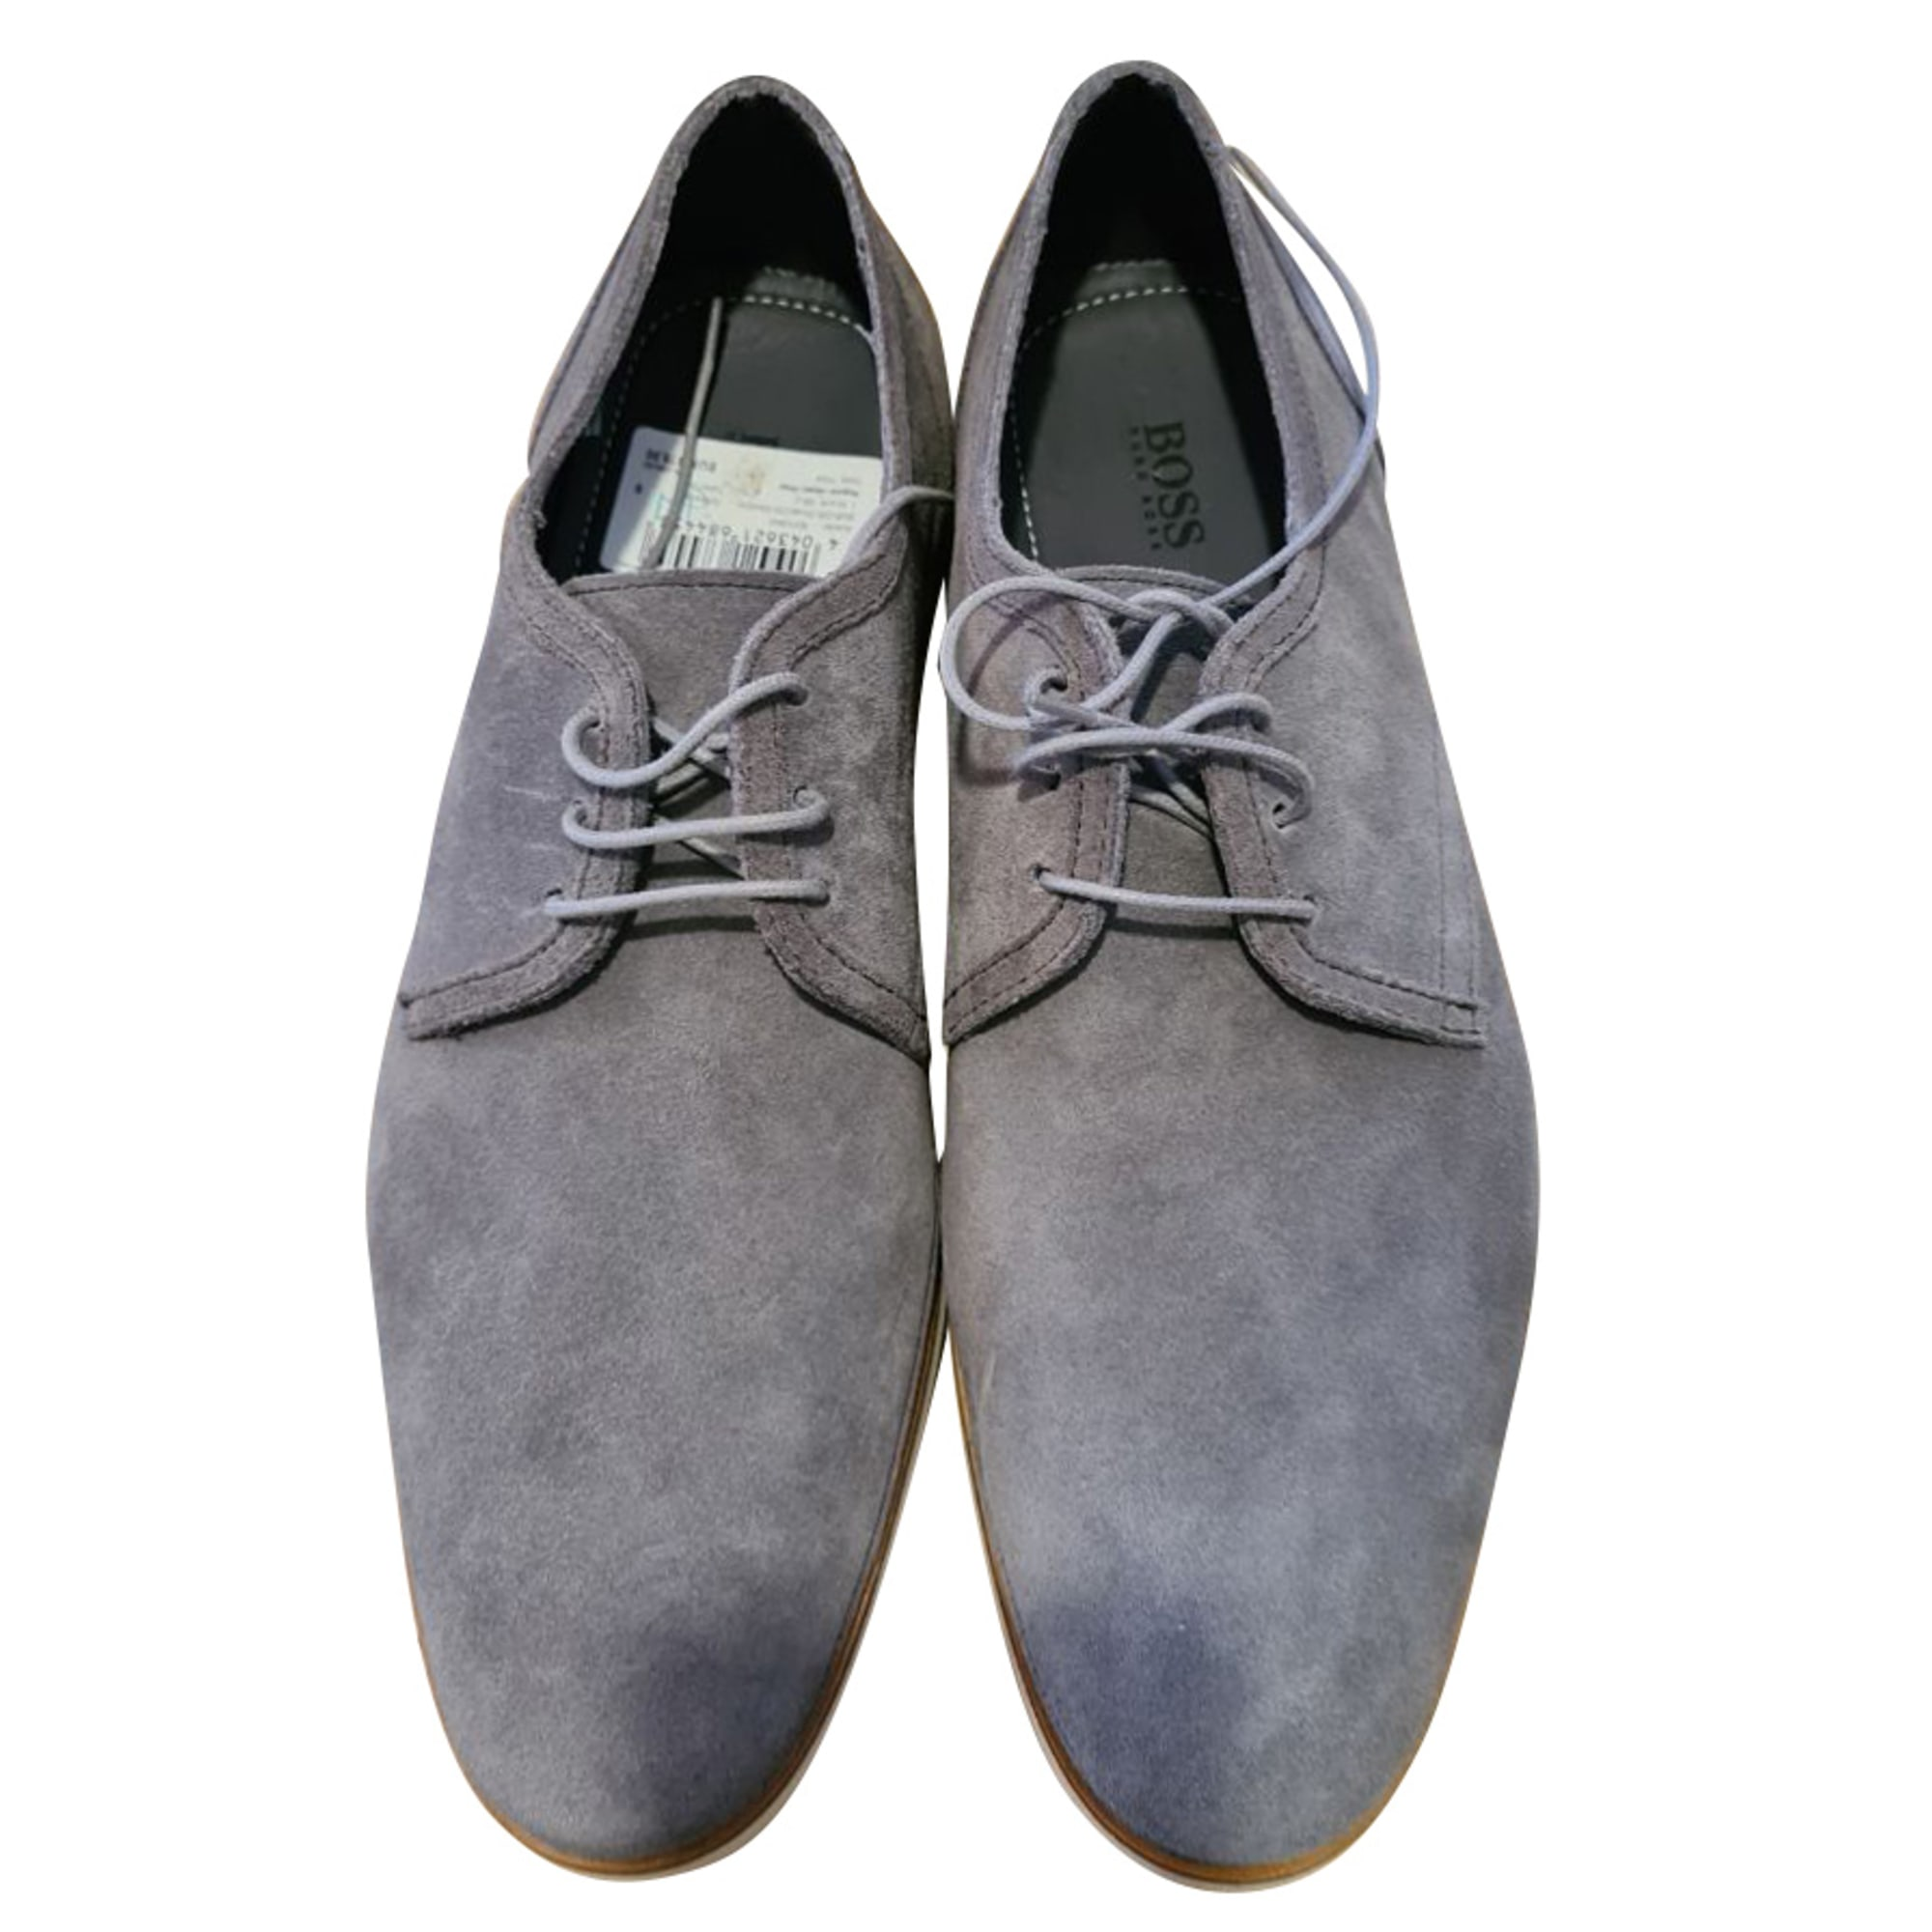 Chaussures à lacets HUGO BOSS Gris, anthracite